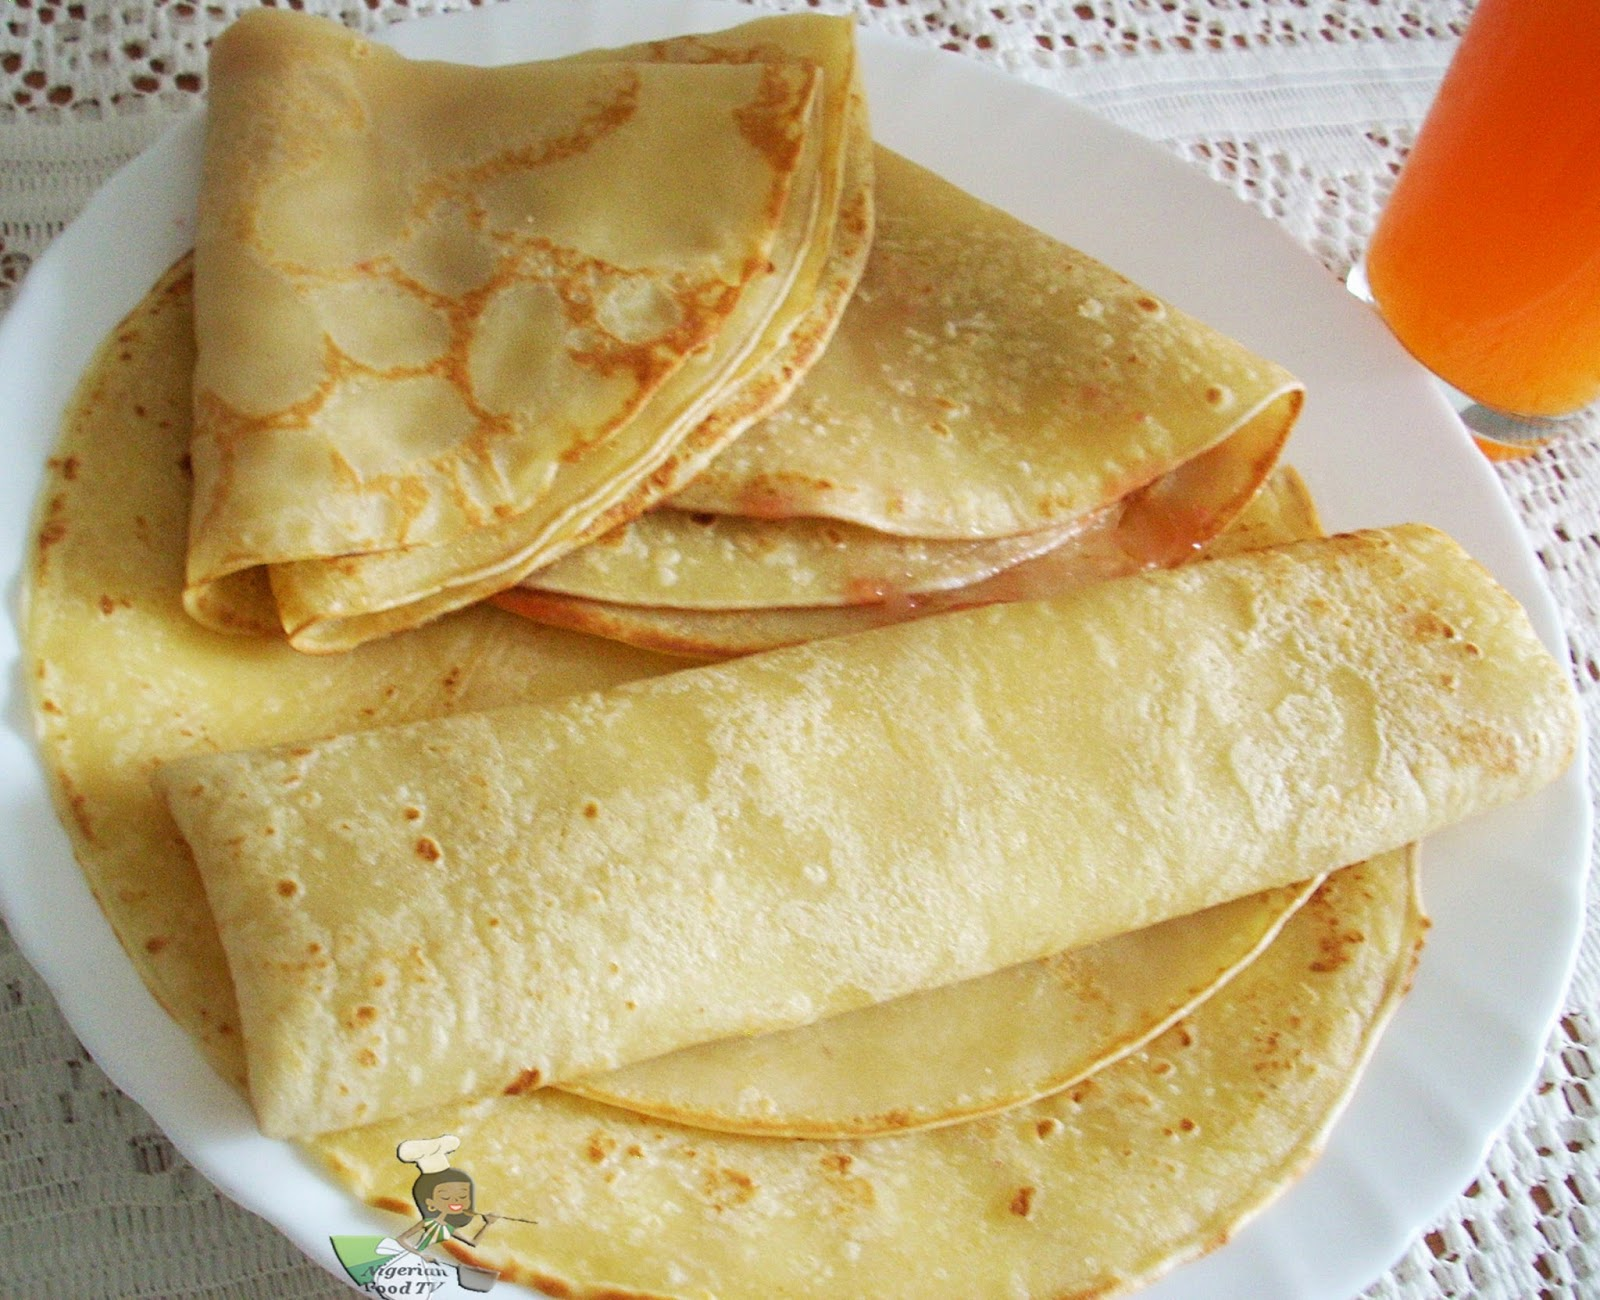 Nigerian Pancake Recipe: How to Make Nigerian Pancake